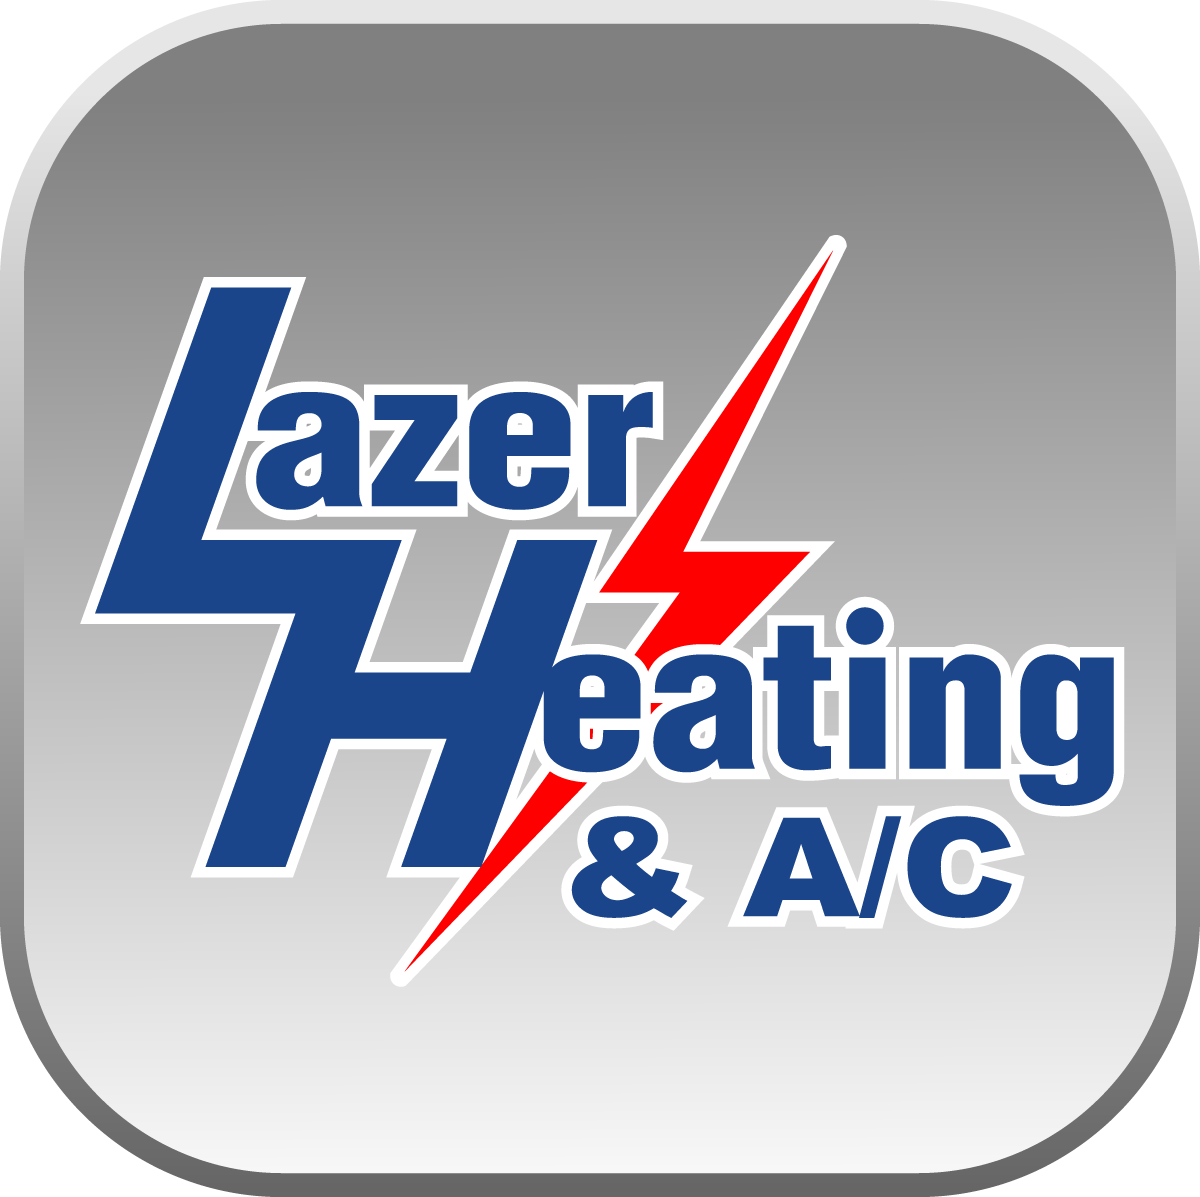 Lazer Heating